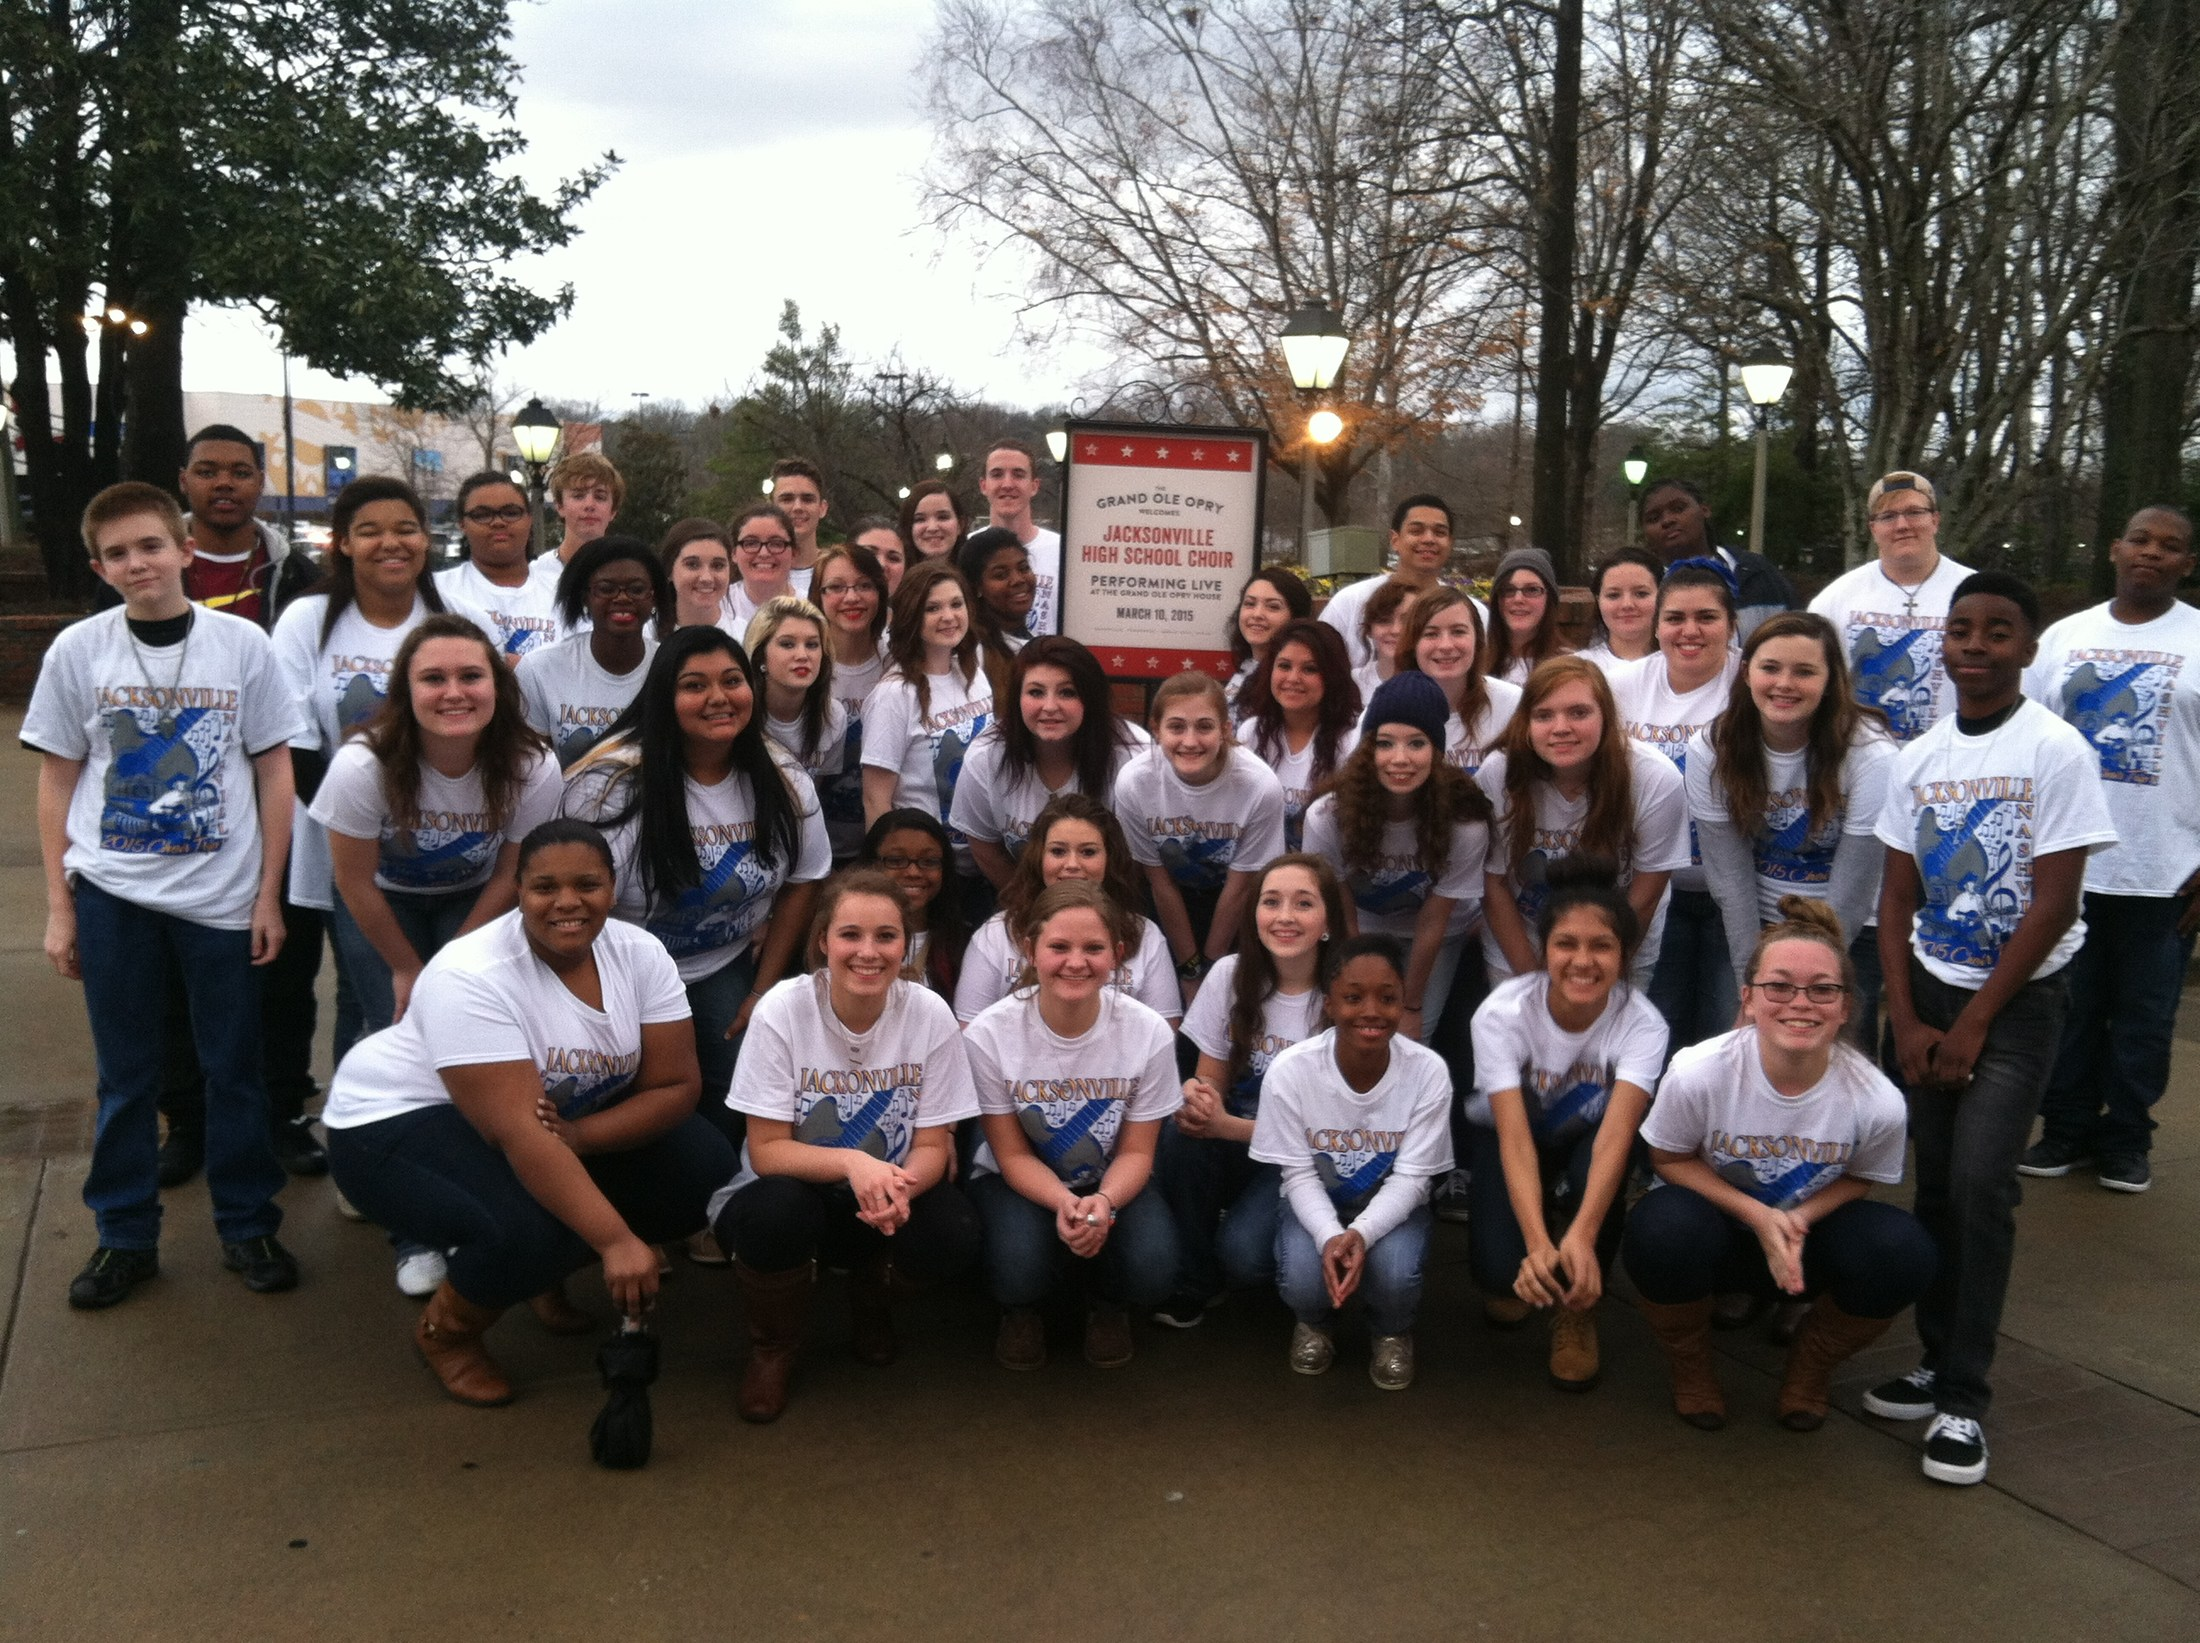 Singing outside the Grand Ole Opry